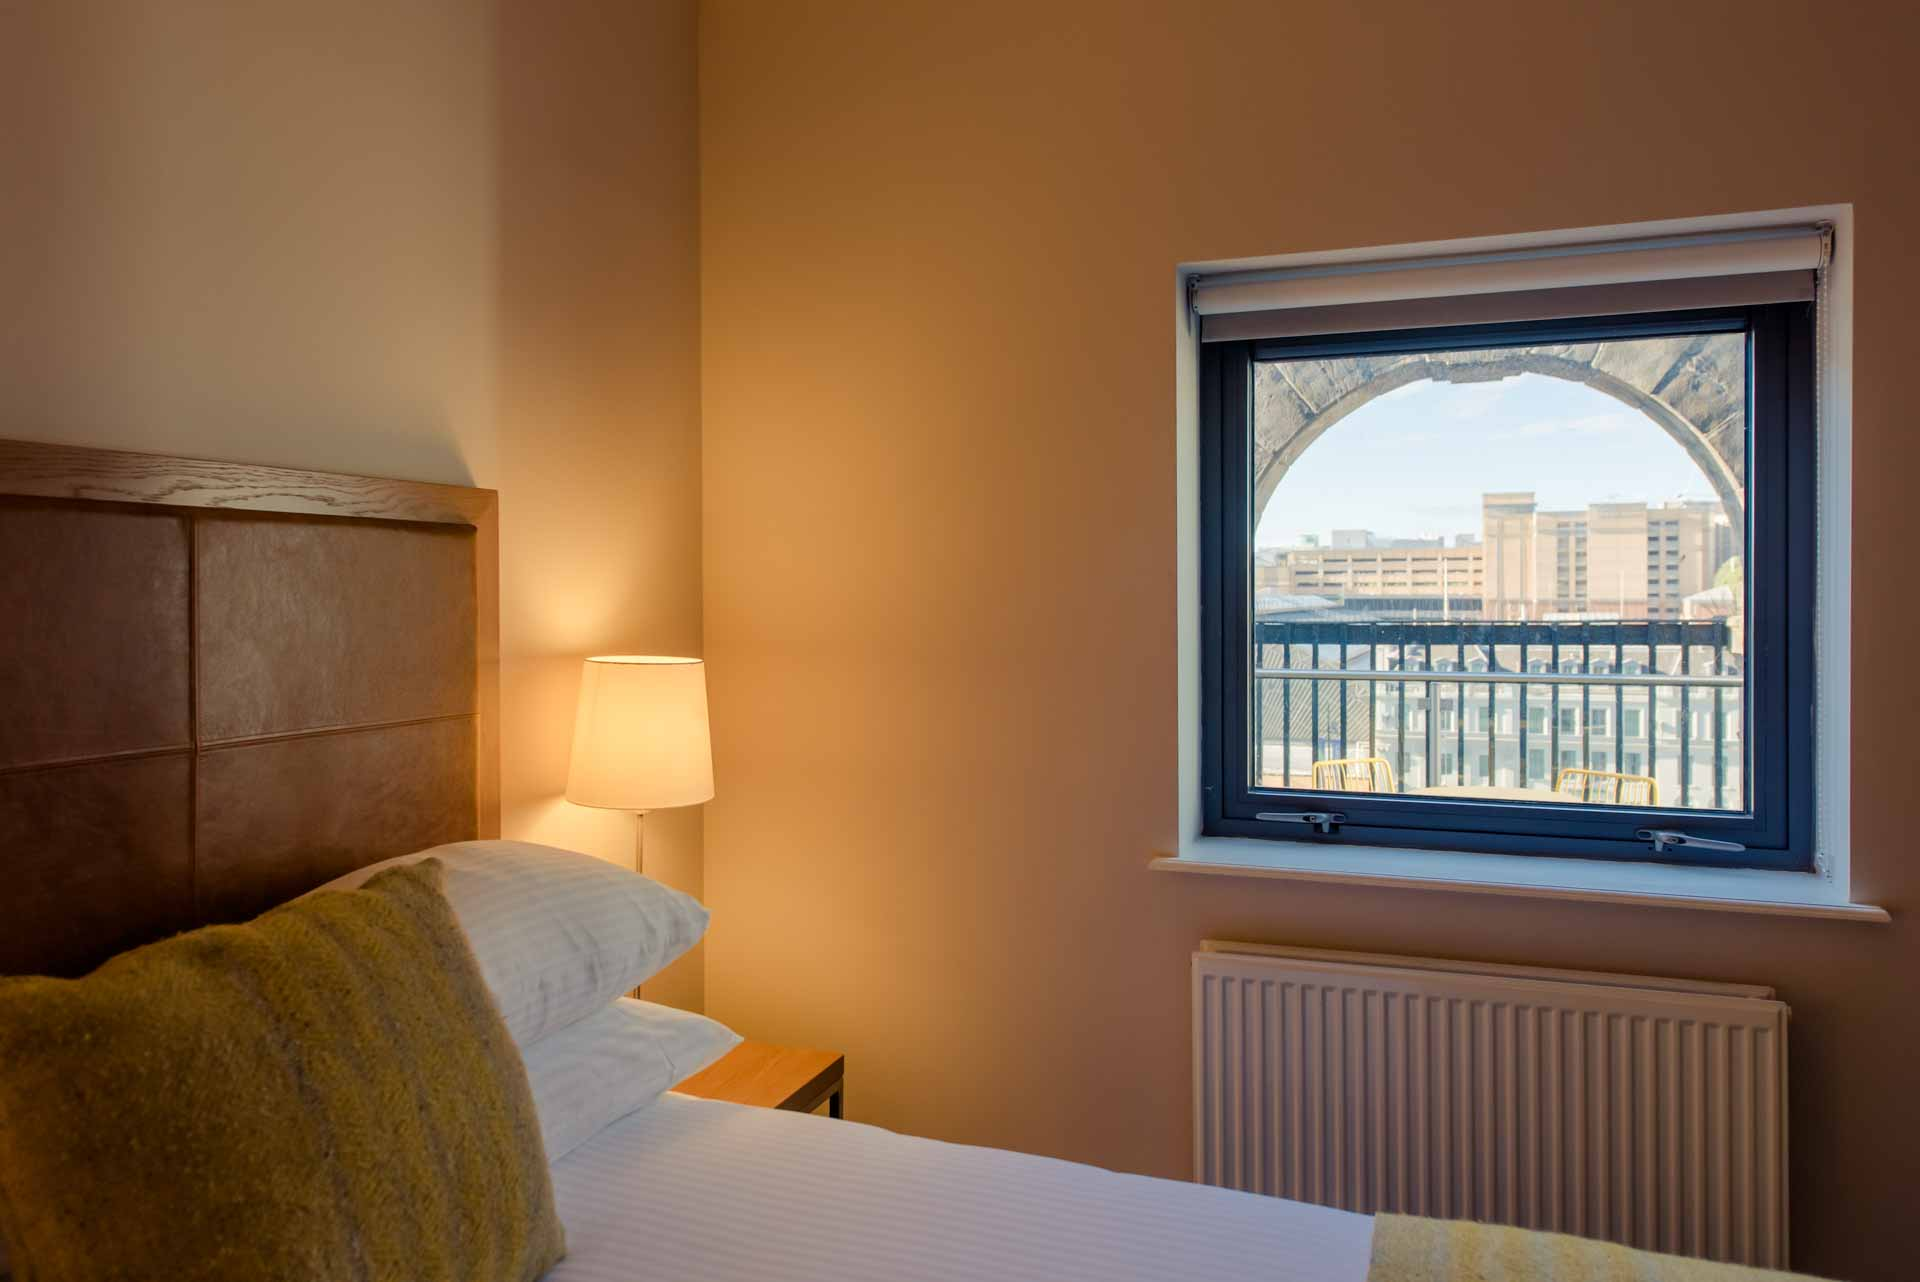 Penthouse bedroom window views PREMIER SUITES PLUS Glasgow George Square